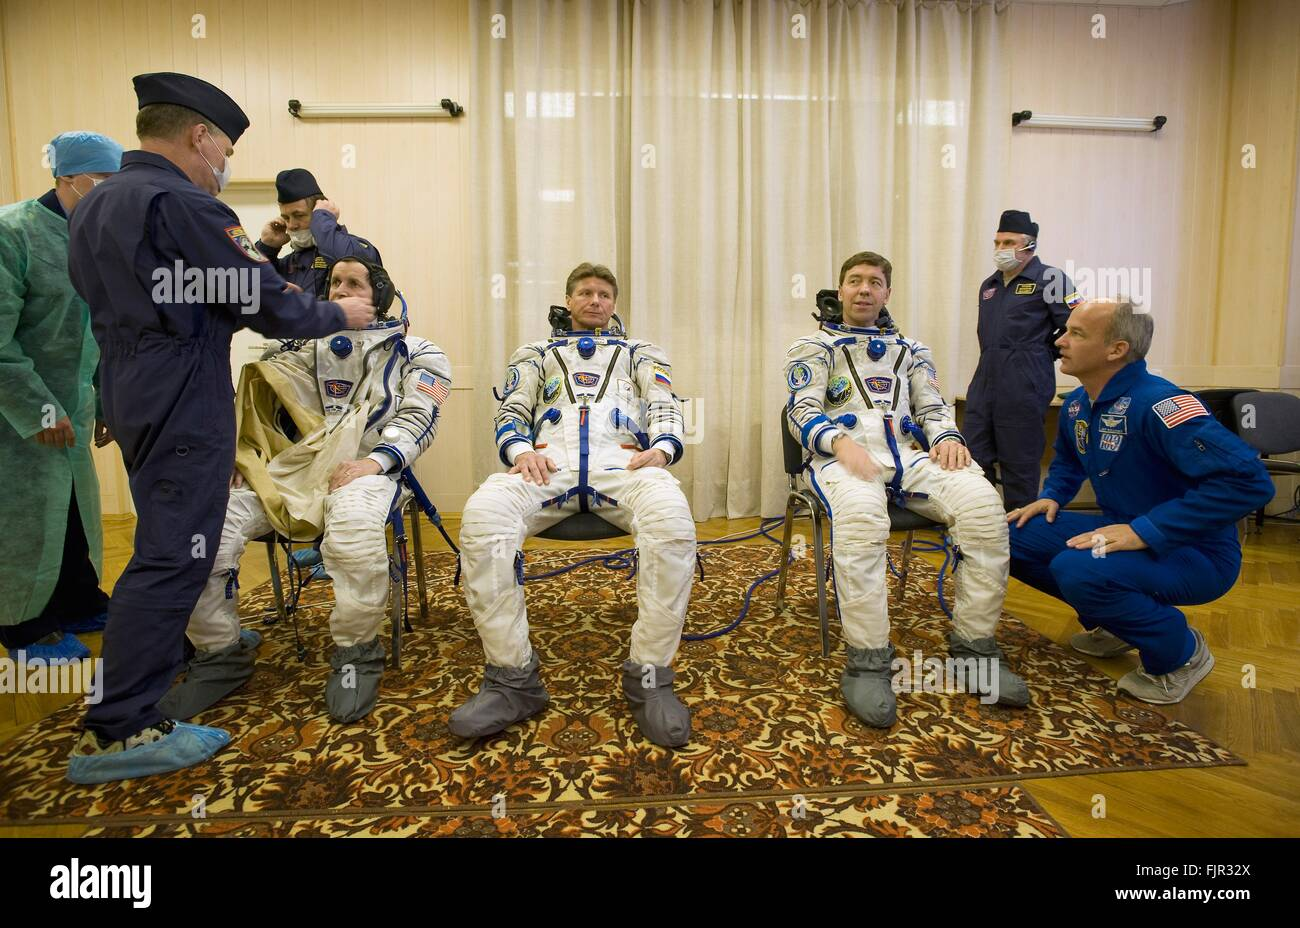 International Space Station Expedition 19 NASA crew members during the pressure check of their sokol spacesuits - Stock Image